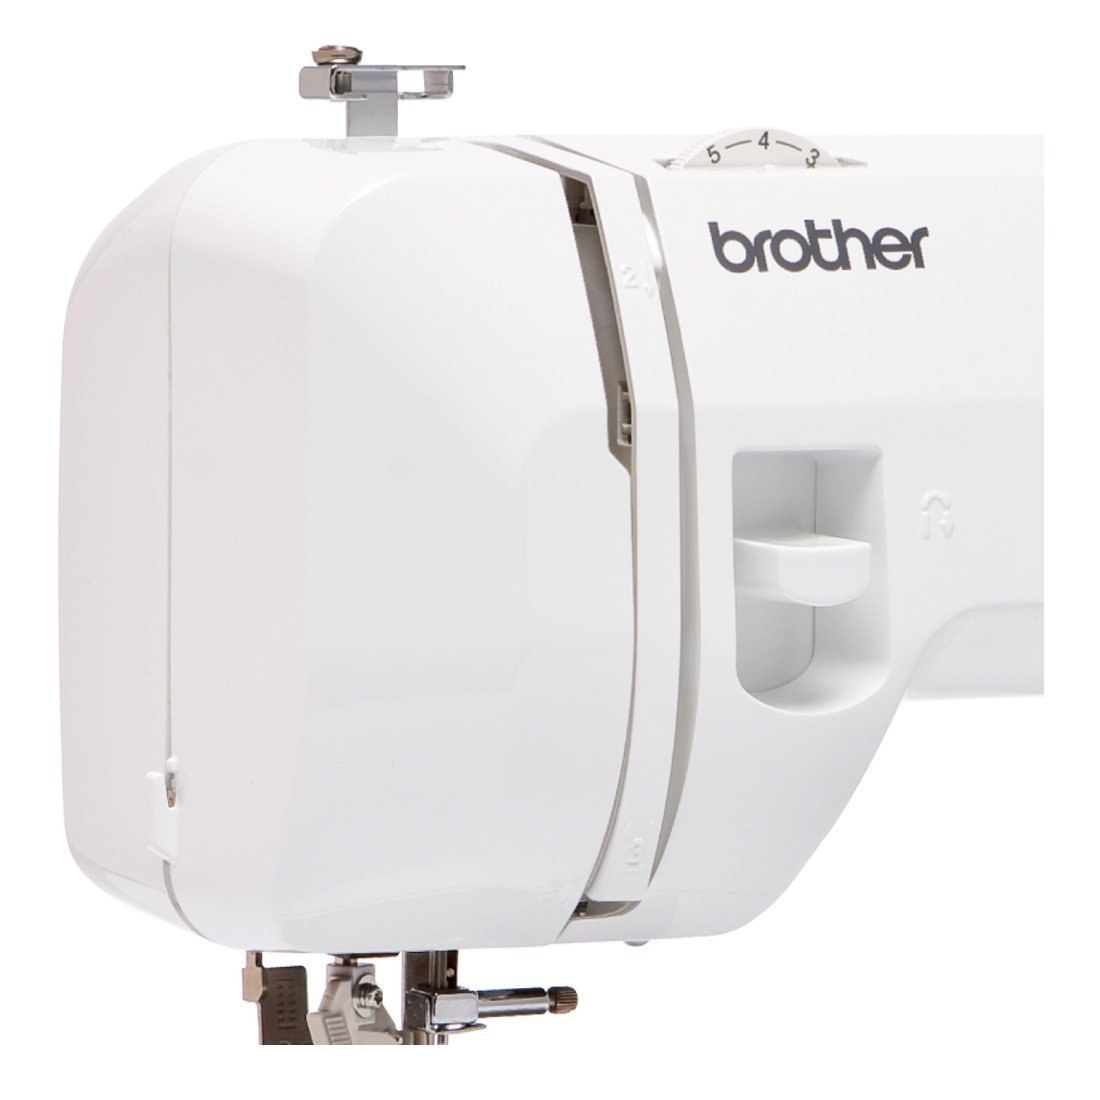 Brother GS 3700 Sewing Machine - Best Sewing machine in India